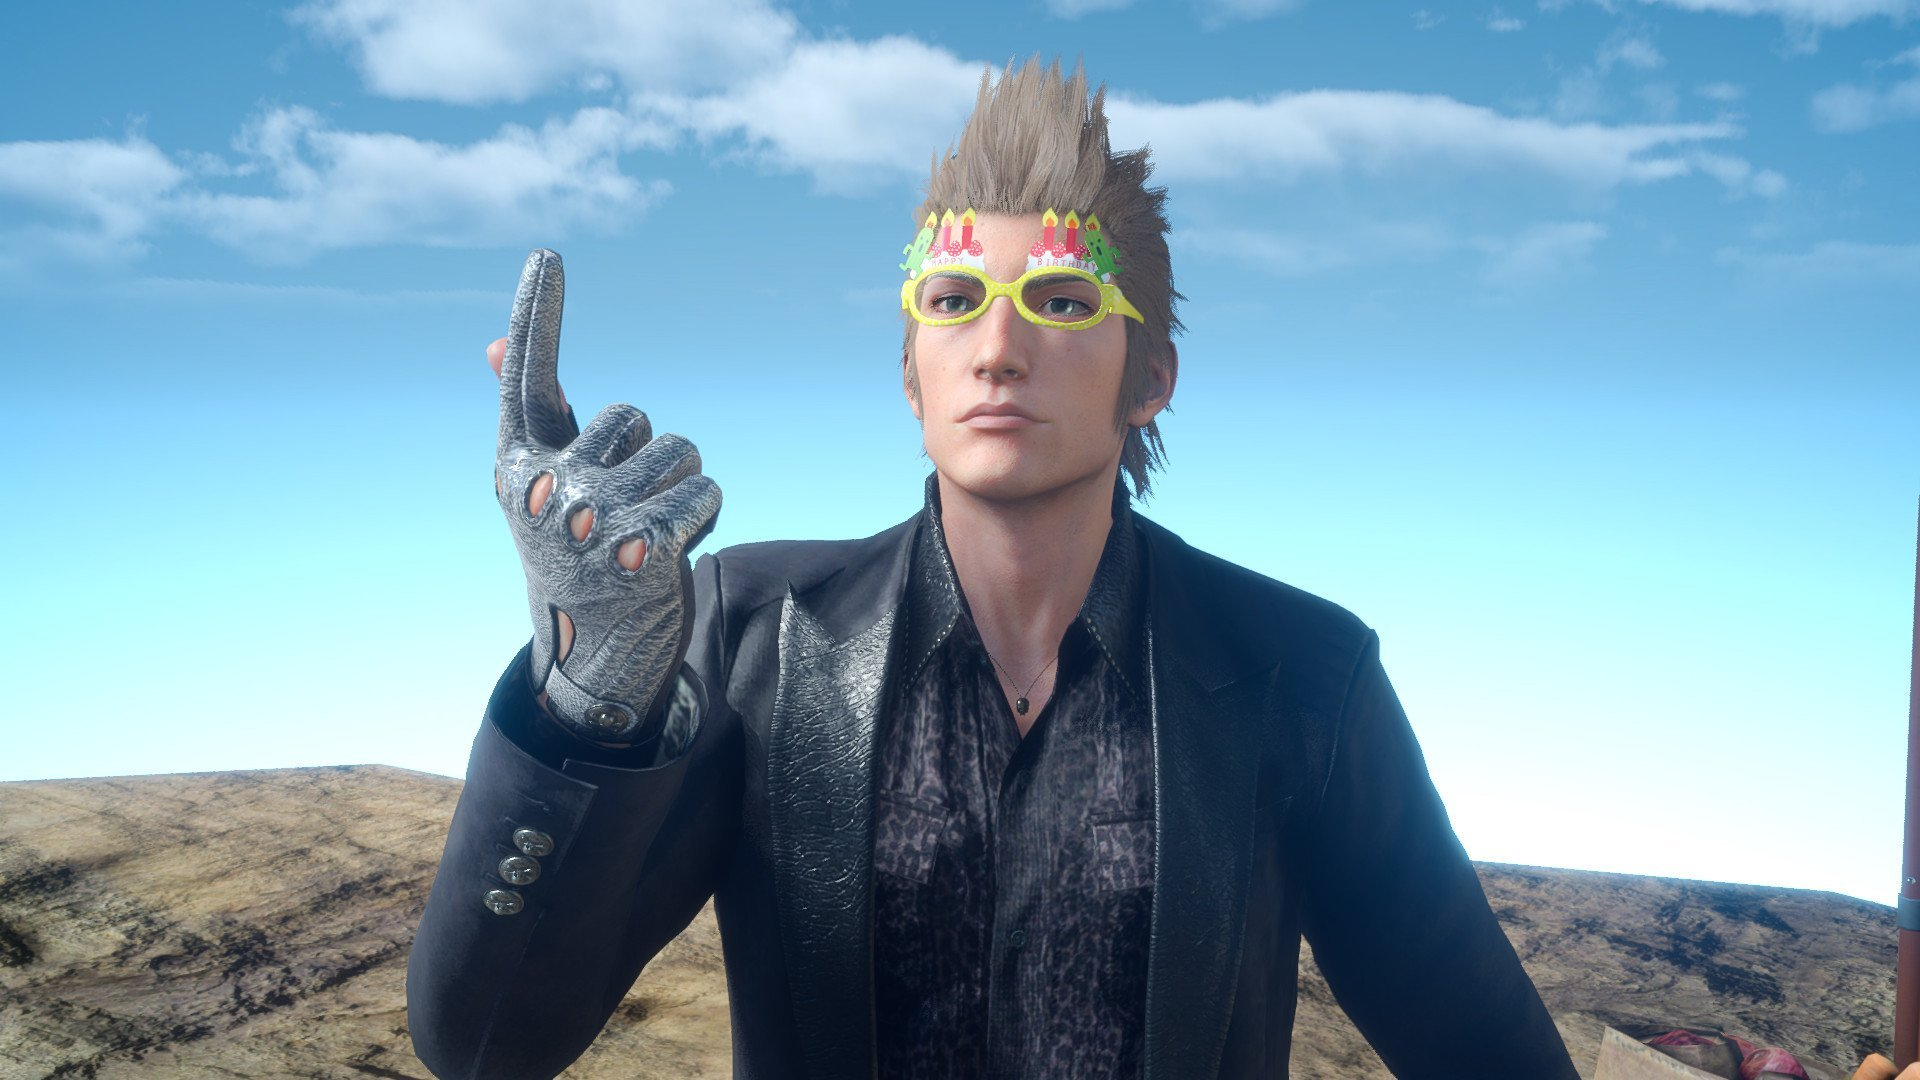 Final Fantasy XV is getting a new patch with UI tweaks, better PS4 Pro performance screenshot